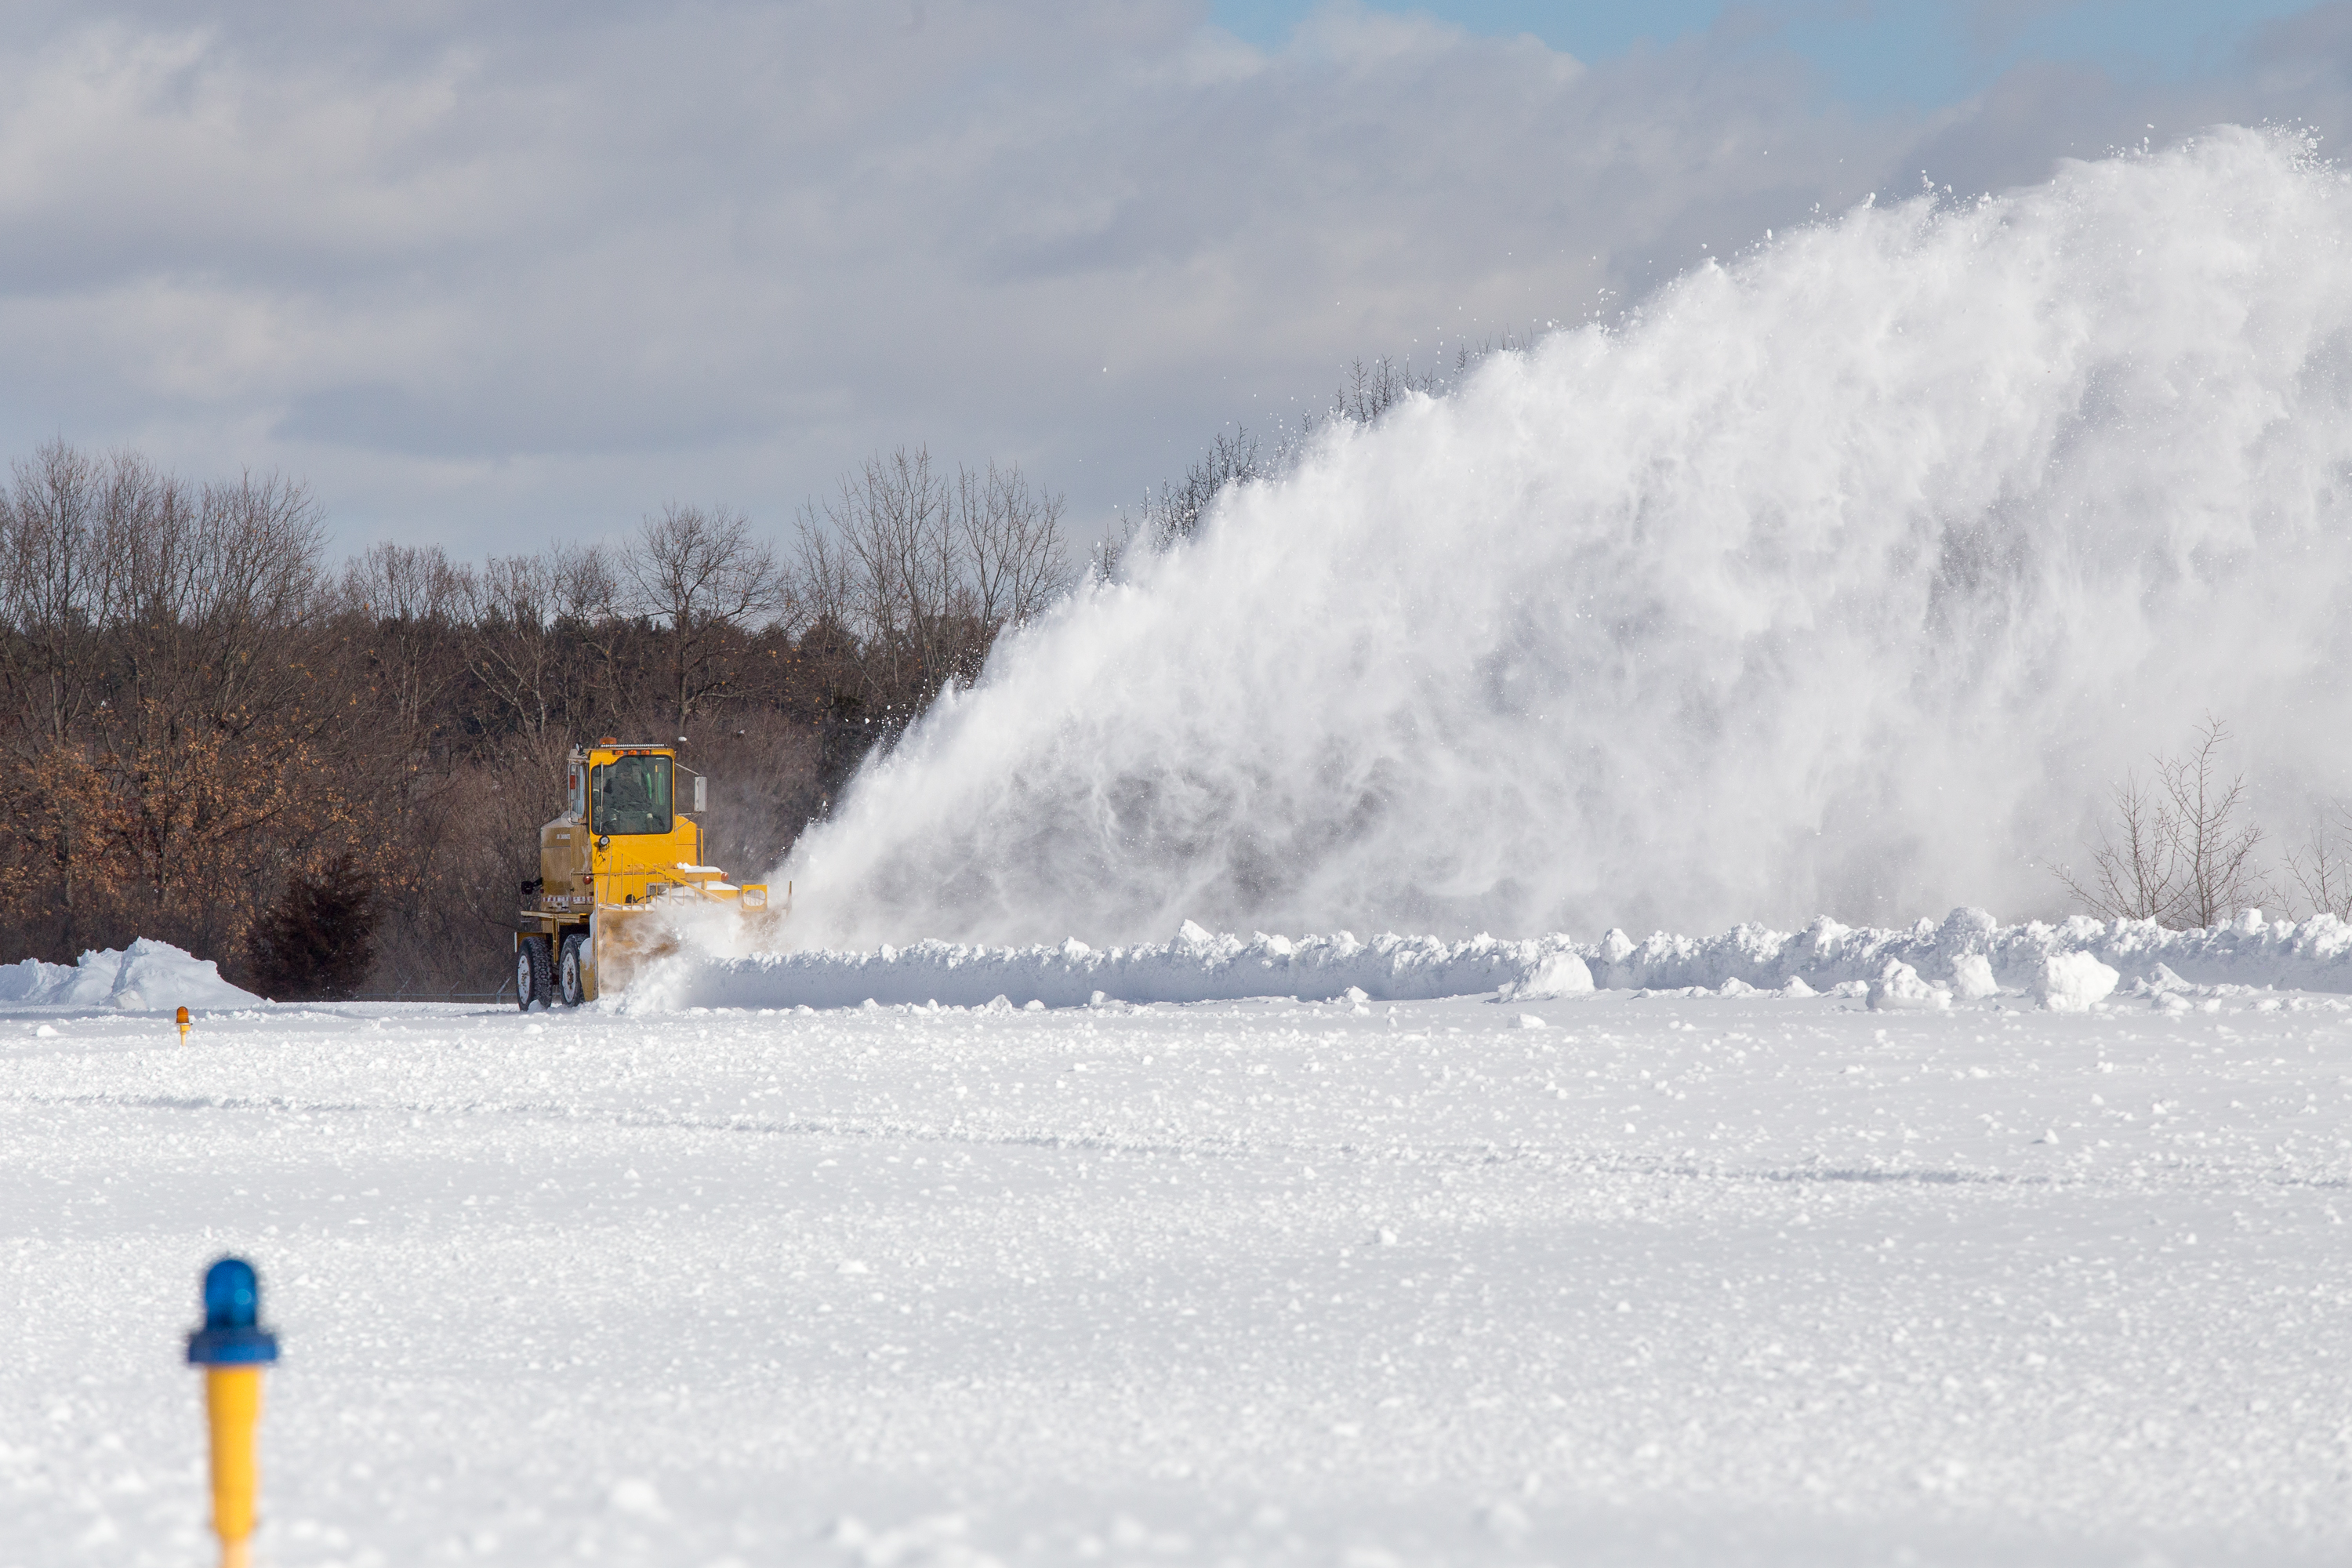 Bill O'Leary, owner of Interstate Aviation in Plainville, Connecticut, and the manager of Robertson Field, said Feb. 10 that the roughly $20,000 he spent a few years ago buying and fixing up this SMI Snowmaster has proved to be a worthwhile investment. Jim Moore photo.